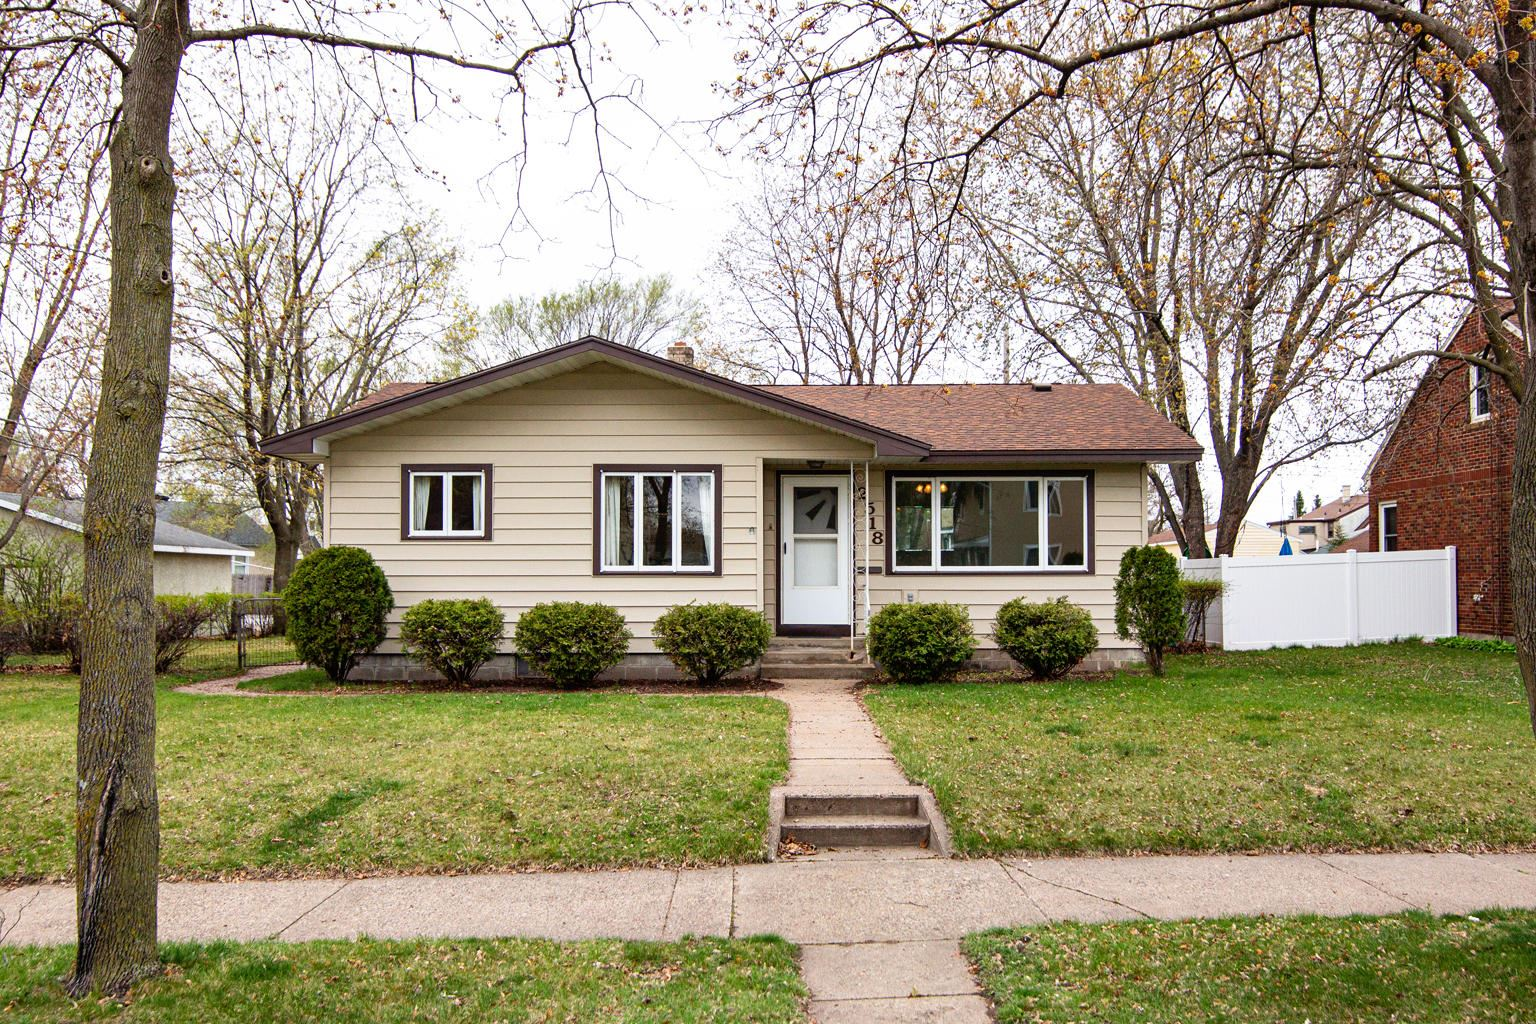 2518 16th St S, La Crosse, WI 54601 - MLS#: 1735252